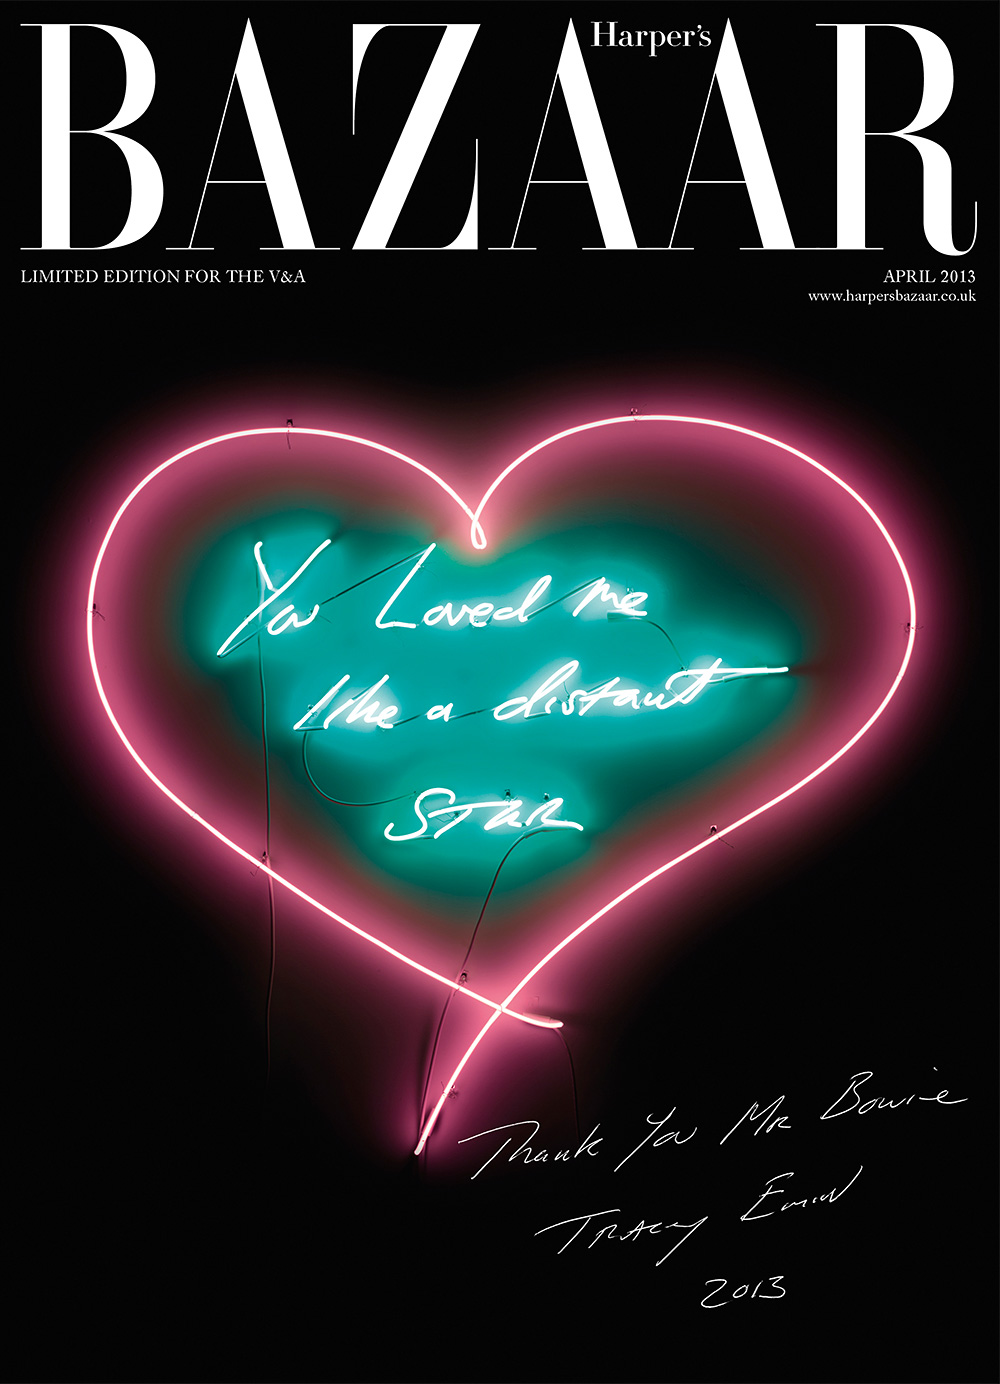 harpers-bazaar-v-and-a-covers-04